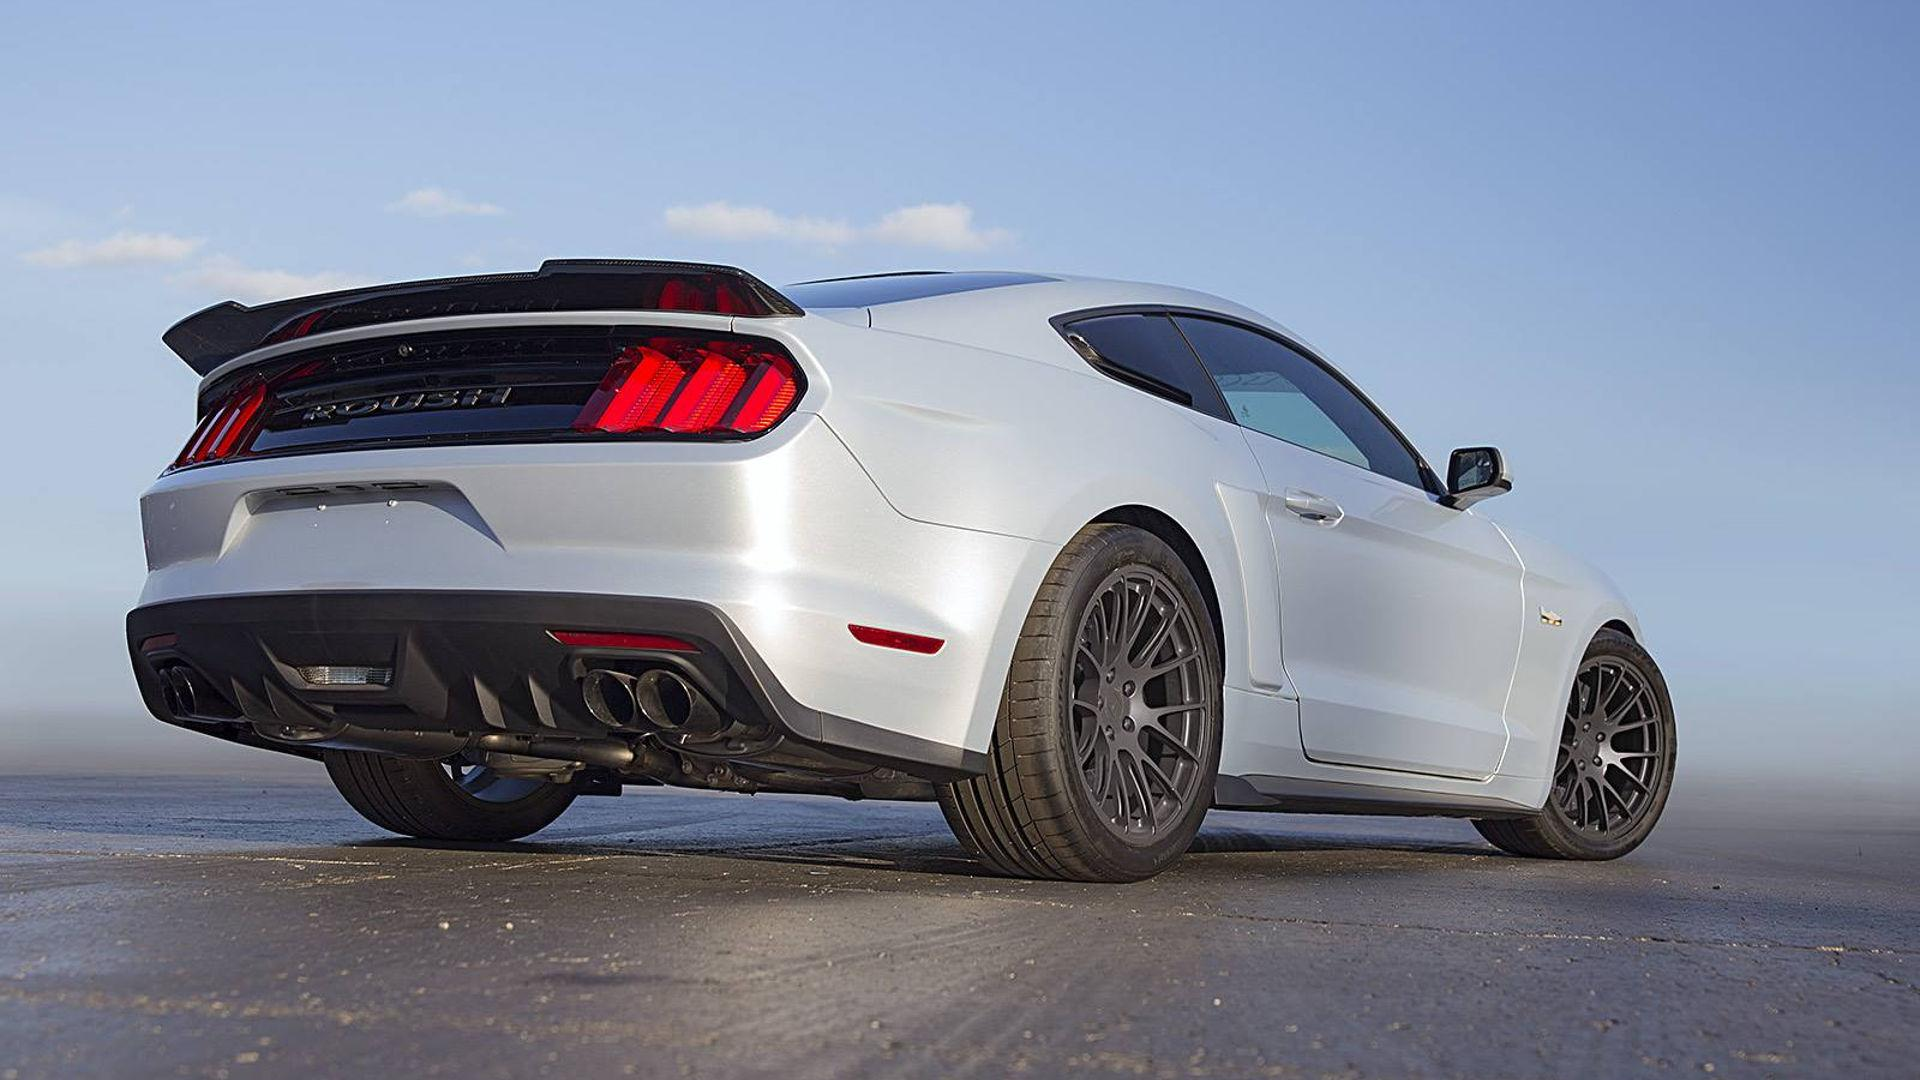 Roush reveals p 51 mustang tribute its most powerful model ever